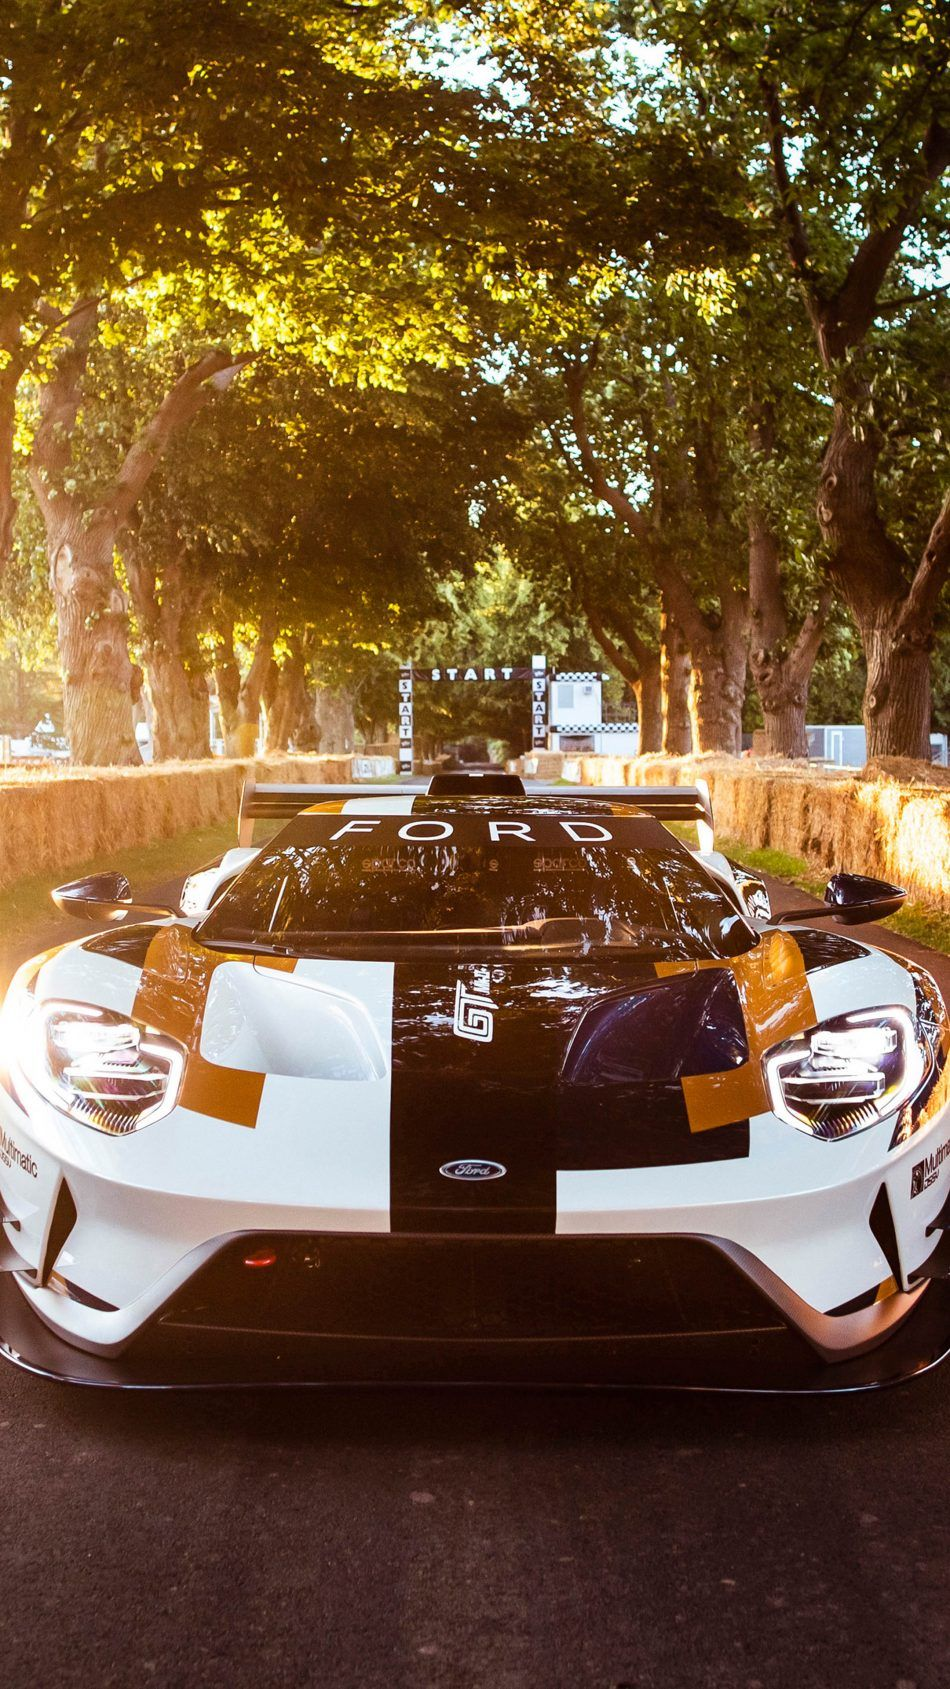 Ford GT MK II 2019 Car Wallpapers Ford gt Cars Cars 950x1689